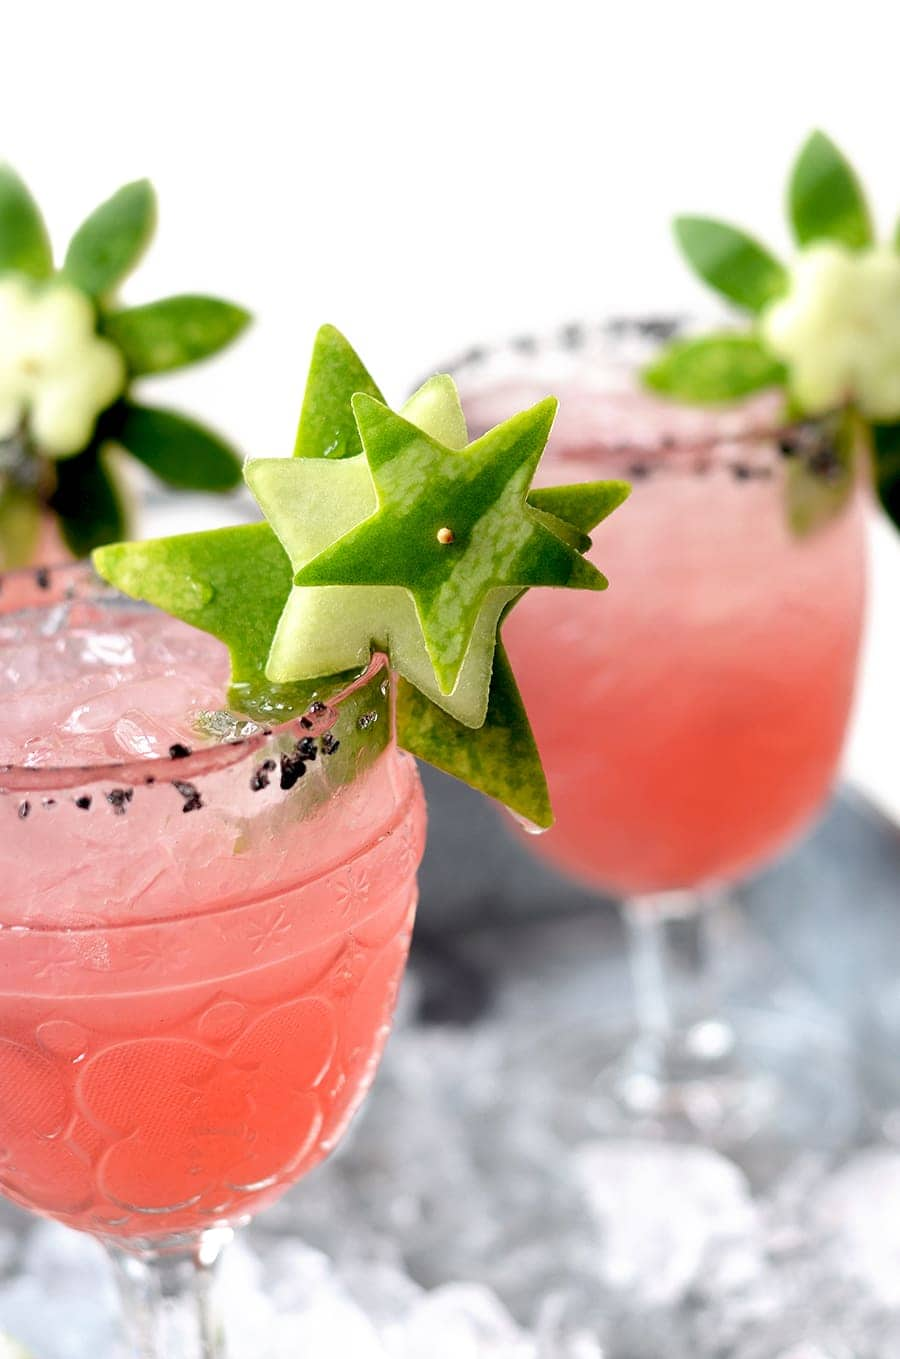 These fresh Watermelon Margaritas are trimmed with garnish made from the rind! Clever, tasty and made from scratch with fresh lime juice and watermelon.